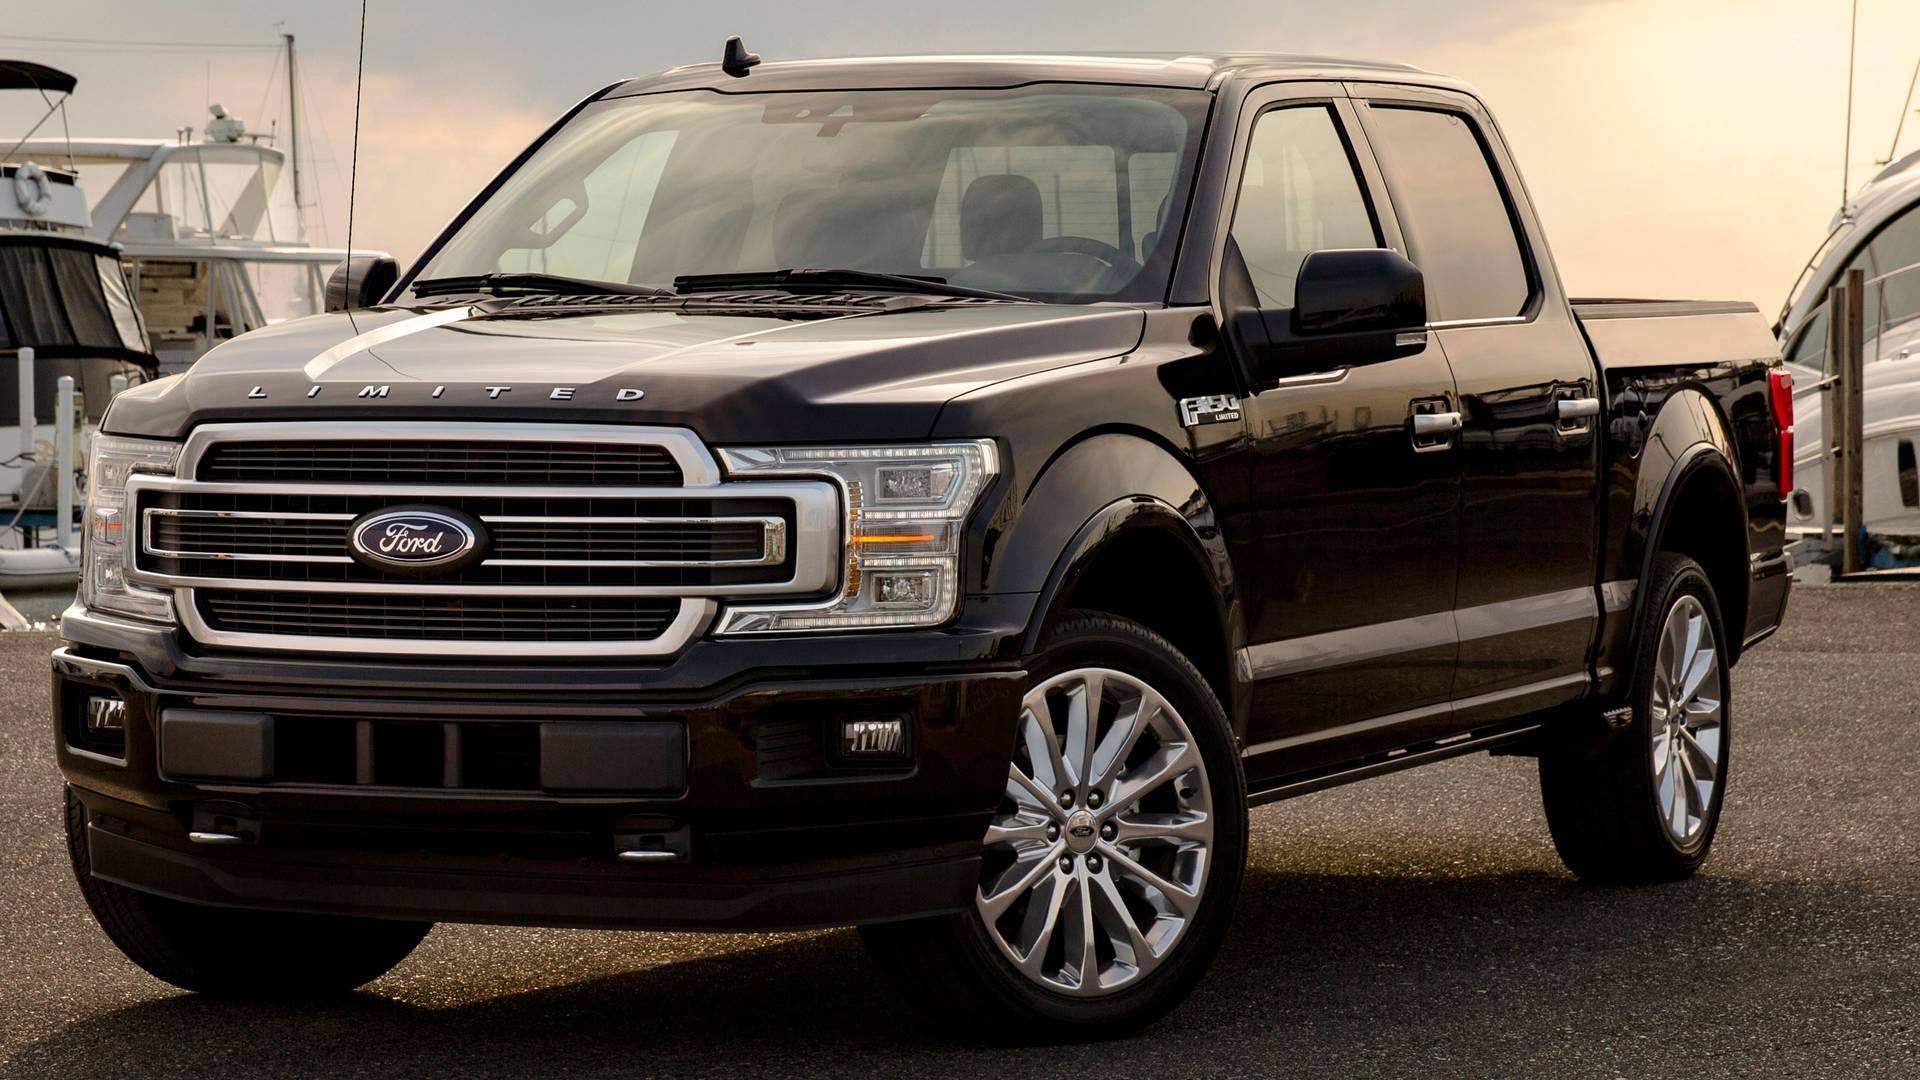 70 New The F150 Ford 2019 Price And Release Date New Concept